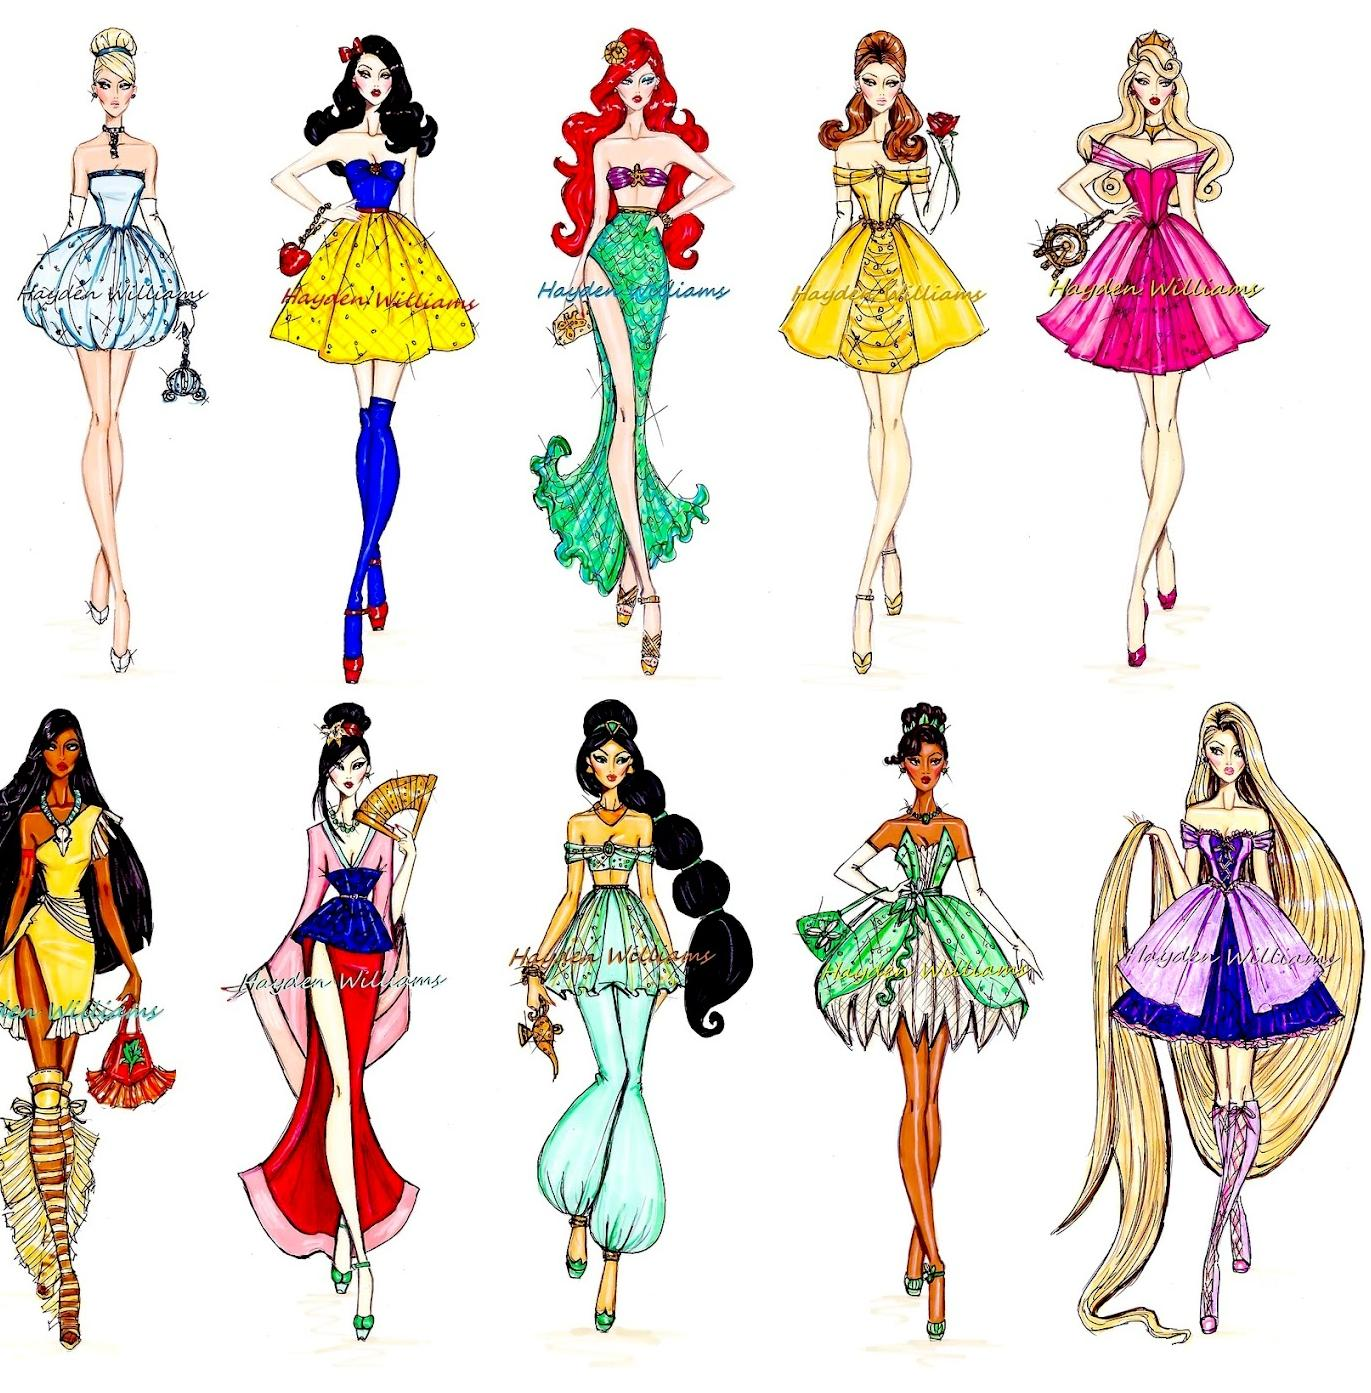 Pass the Candy: Life: Hayden Williams